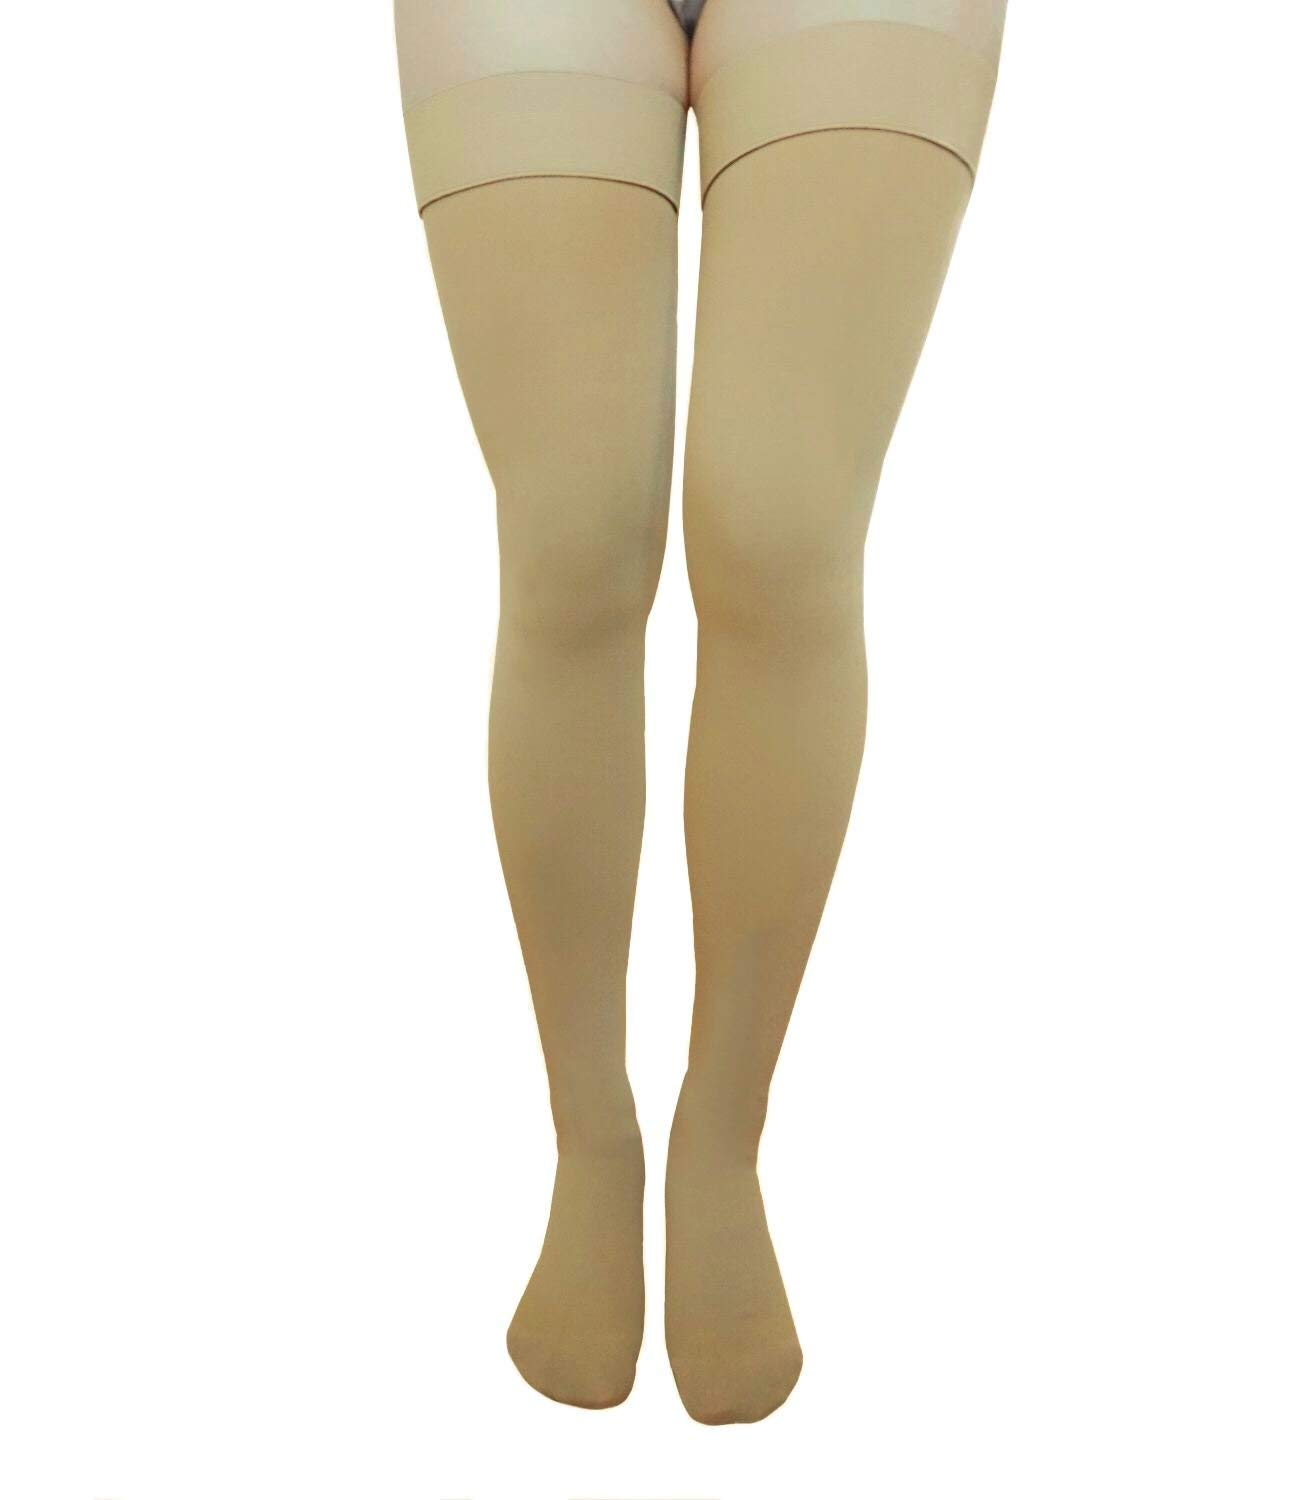 e11b9ceedd28f5 Get Quotations · Runee High Quality Thigh High Closed Toe Compression  Stockings Best For Swelling, Varicose Vein,